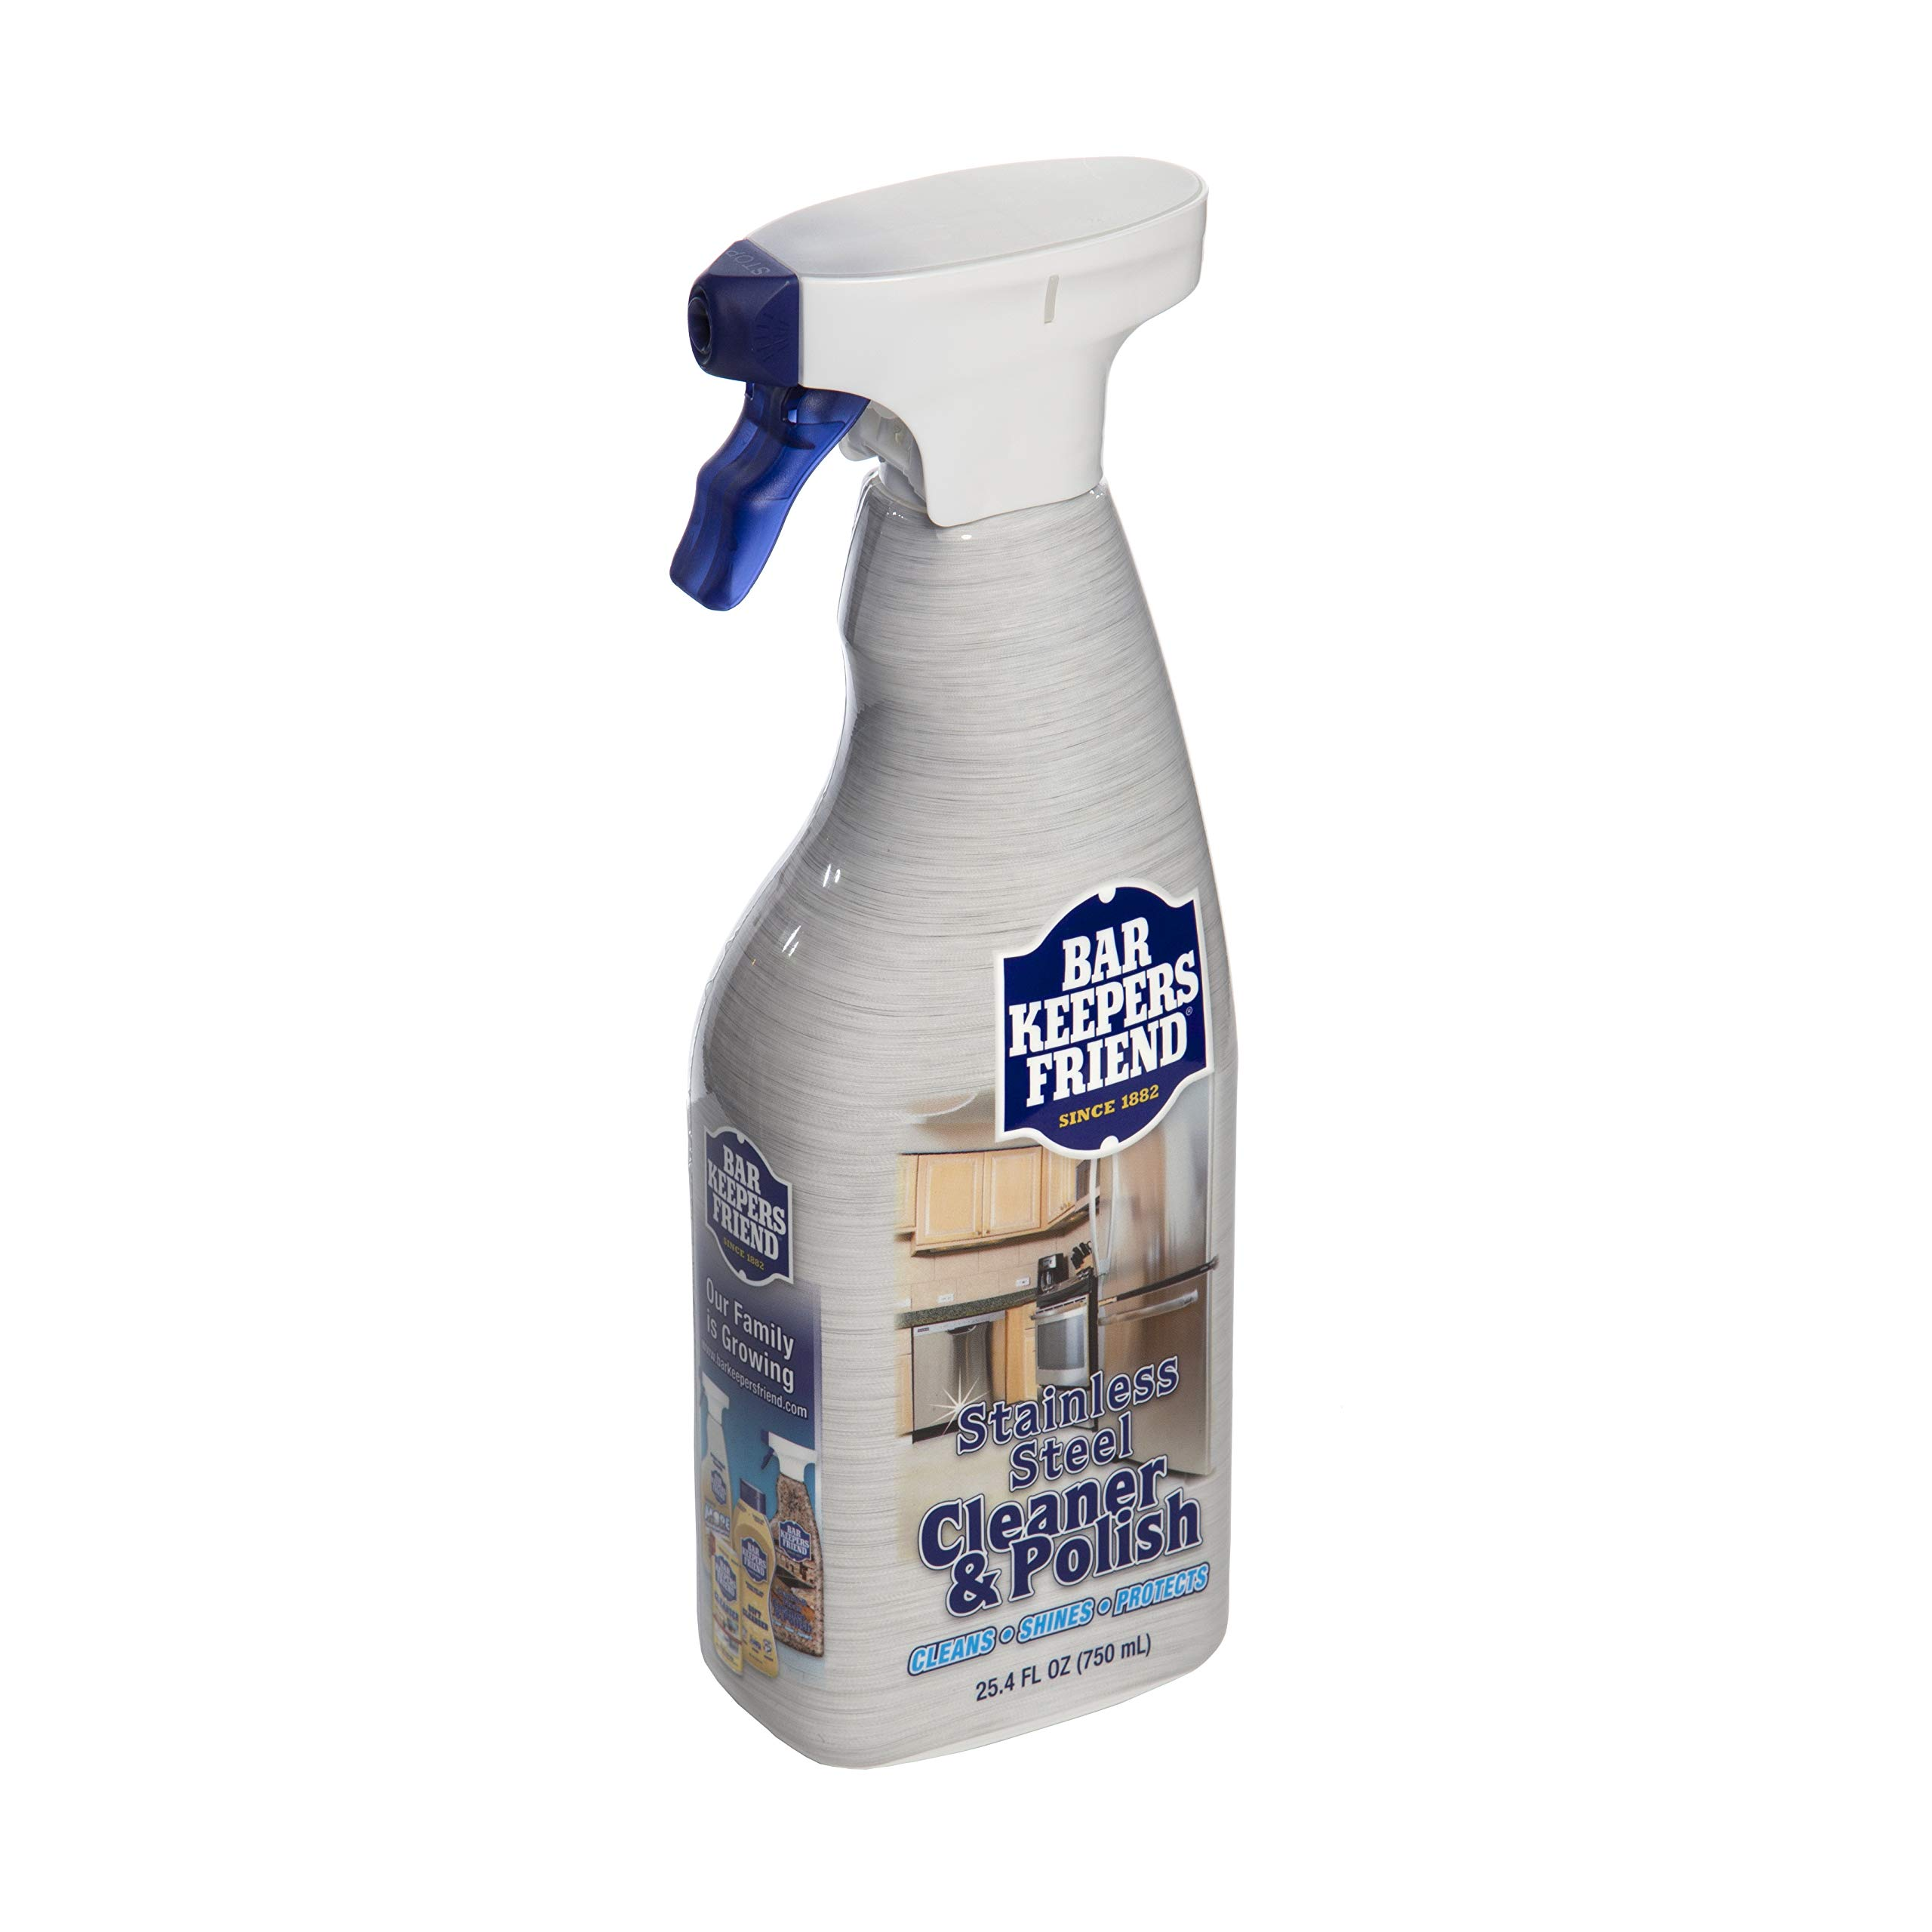 Bar Keepers Friend Stainless Steel Cleaner & Polish (25.4 oz) - Cleans Stainless Steel Refrigerators, Kitchen Sinks, Oven Doors, Oven Hoods, and Other Stainless Steel Surfaces (4) by  Bar Keepers Friend (Image #4)